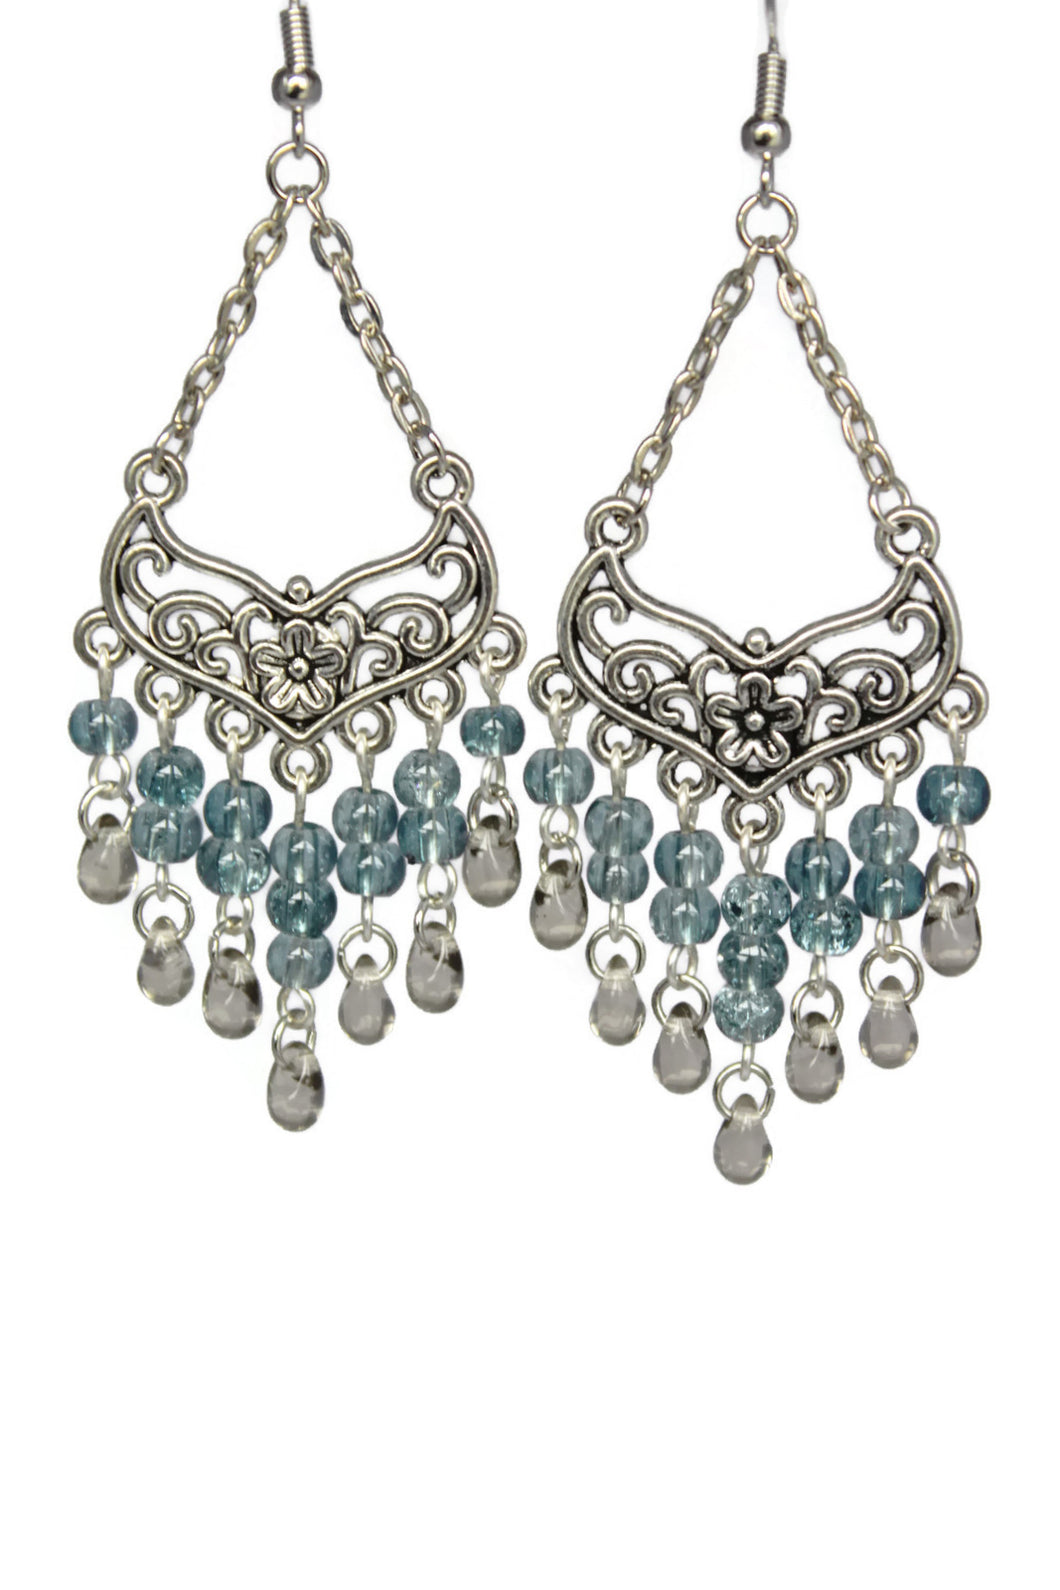 Blue Stone Chandelier Earrings Antiqued Silver Smooth Chevron Flower Clip Ons No Piercing